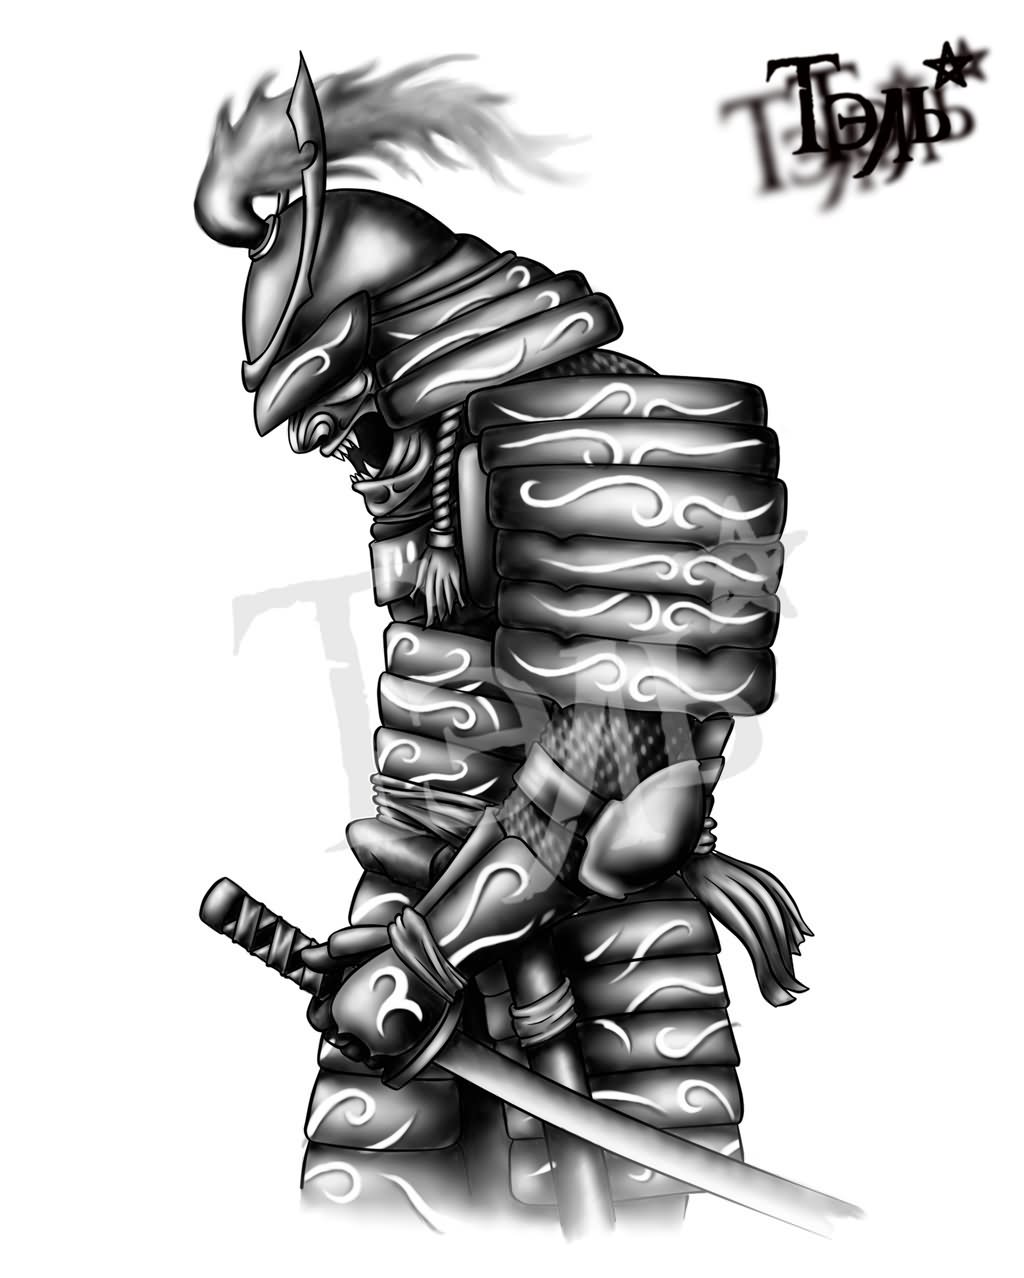 Black And Grey Samurai With Sword Tattoo Design For Forearm